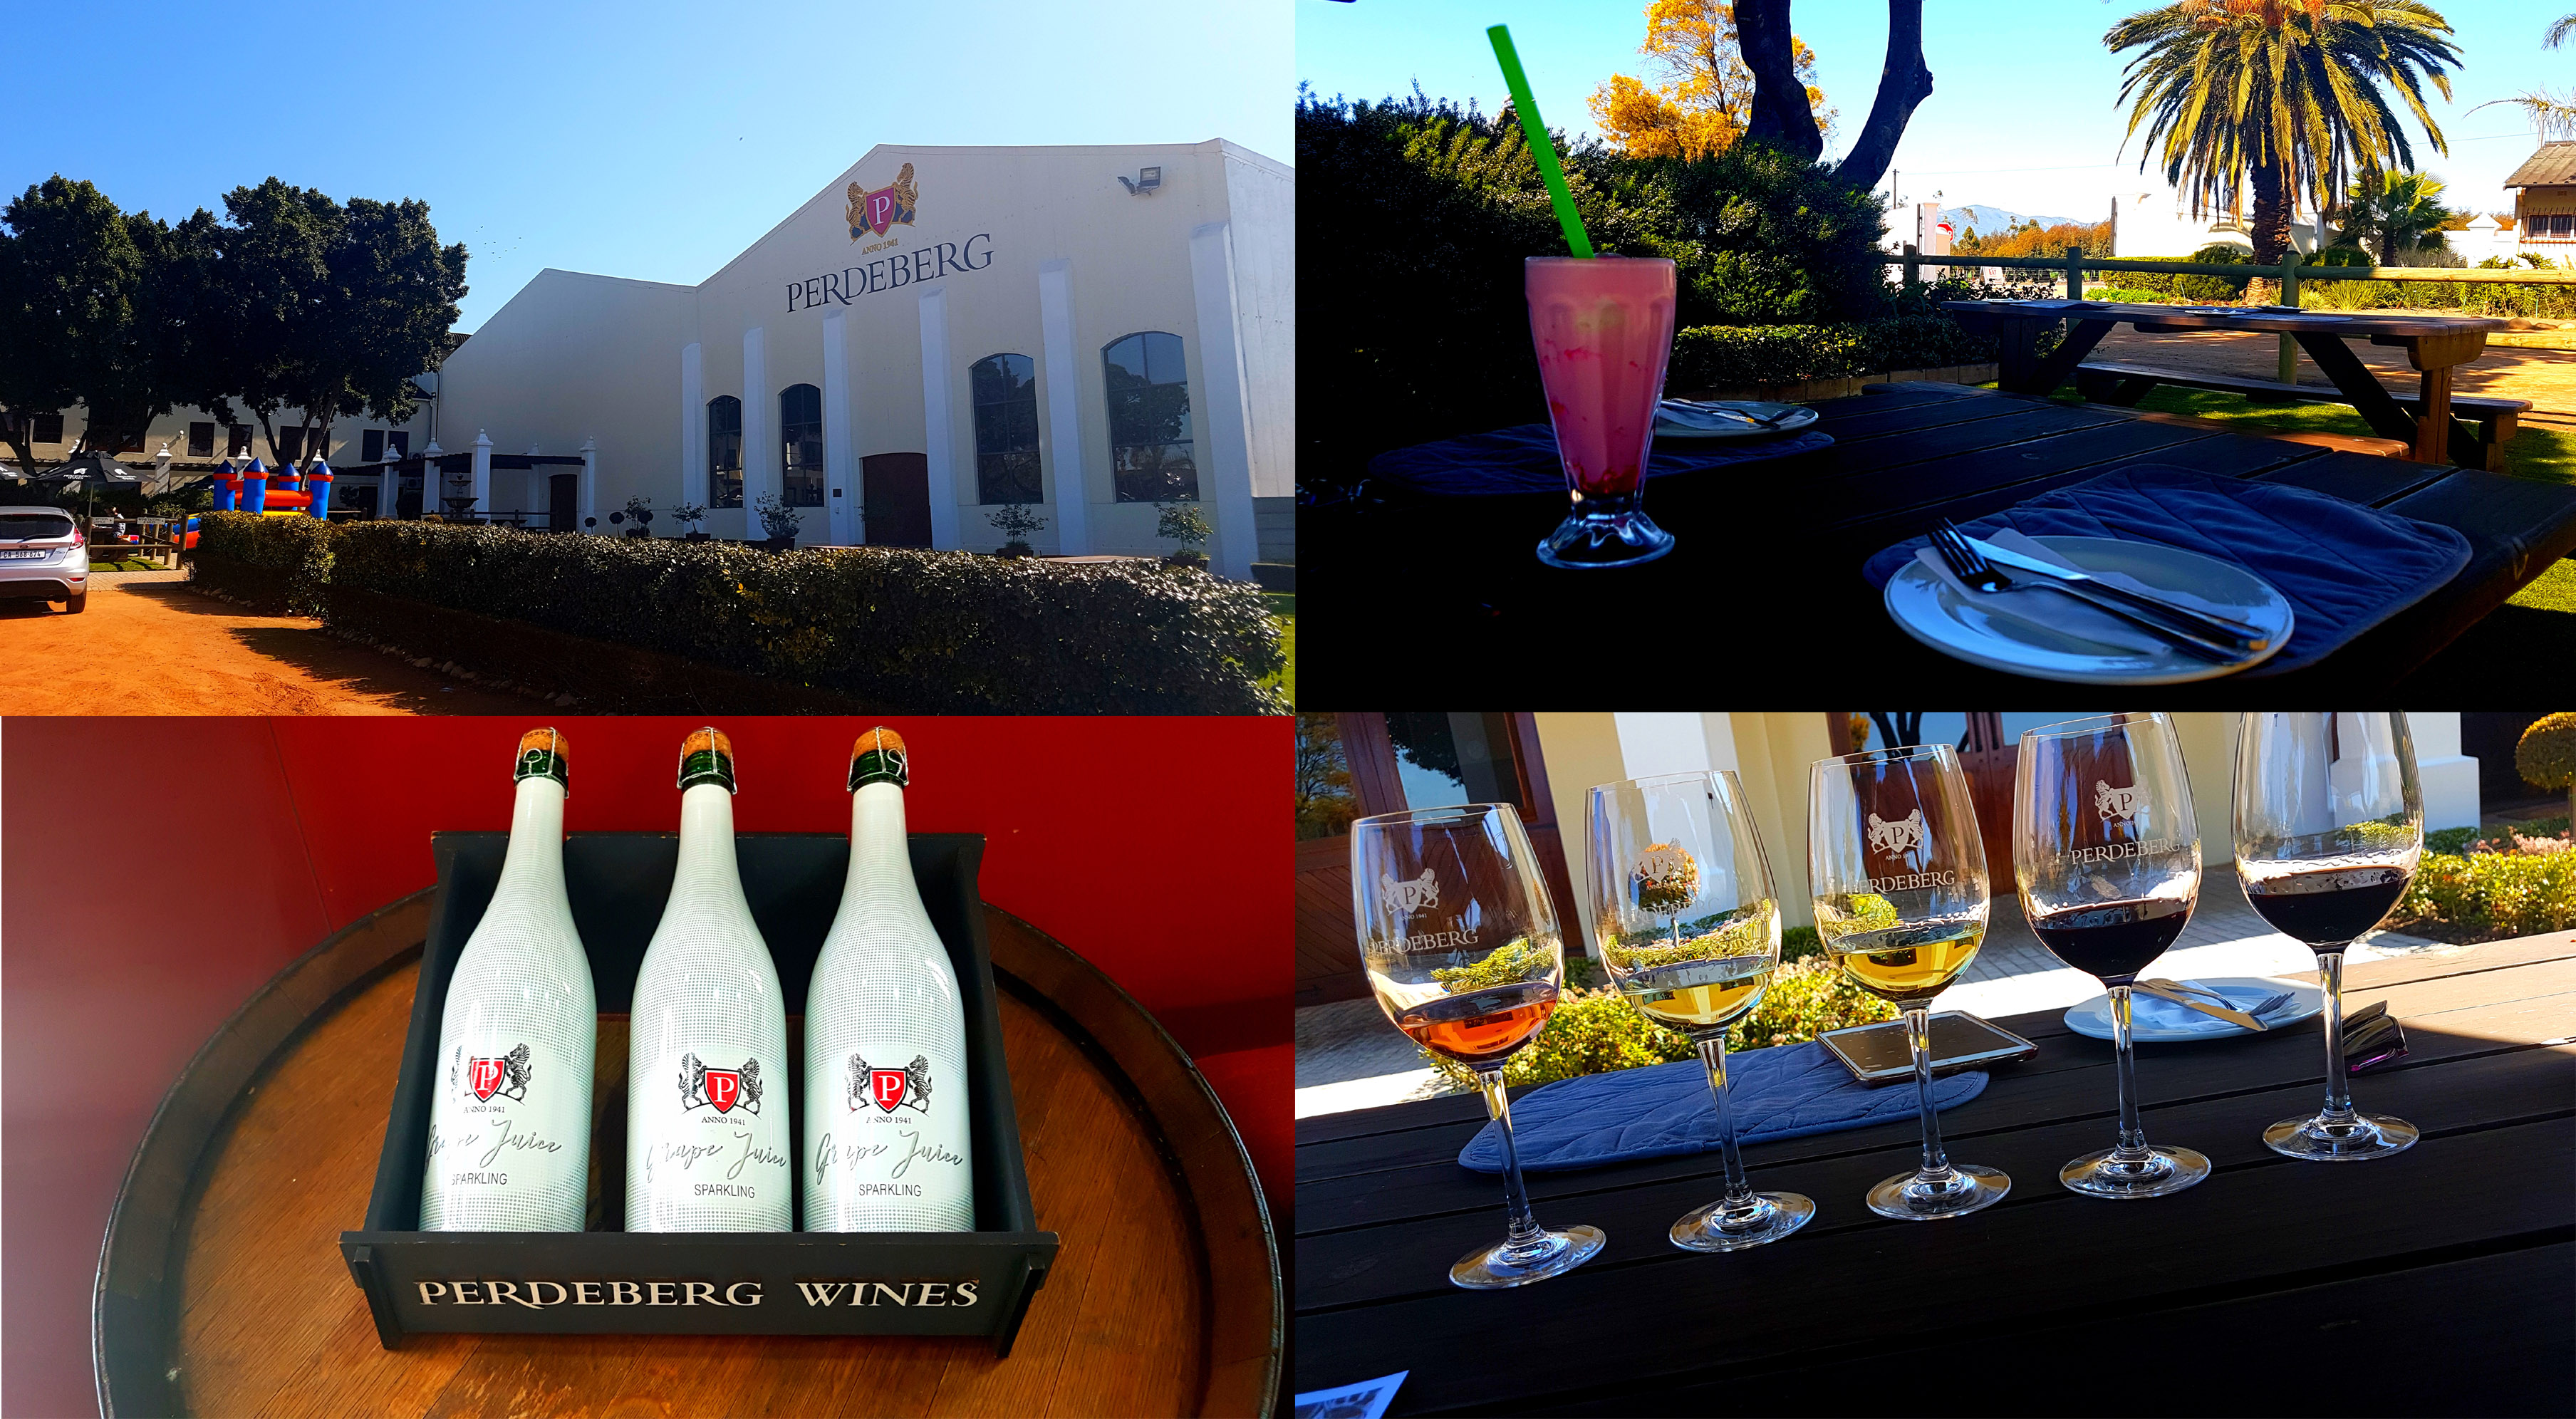 It was perfect weather for sitting outside, so sit outside we did. See the main Perdeberg Cellar building, as well as their grape juice bottles, my strawberry shake and the wines Husband sampled.